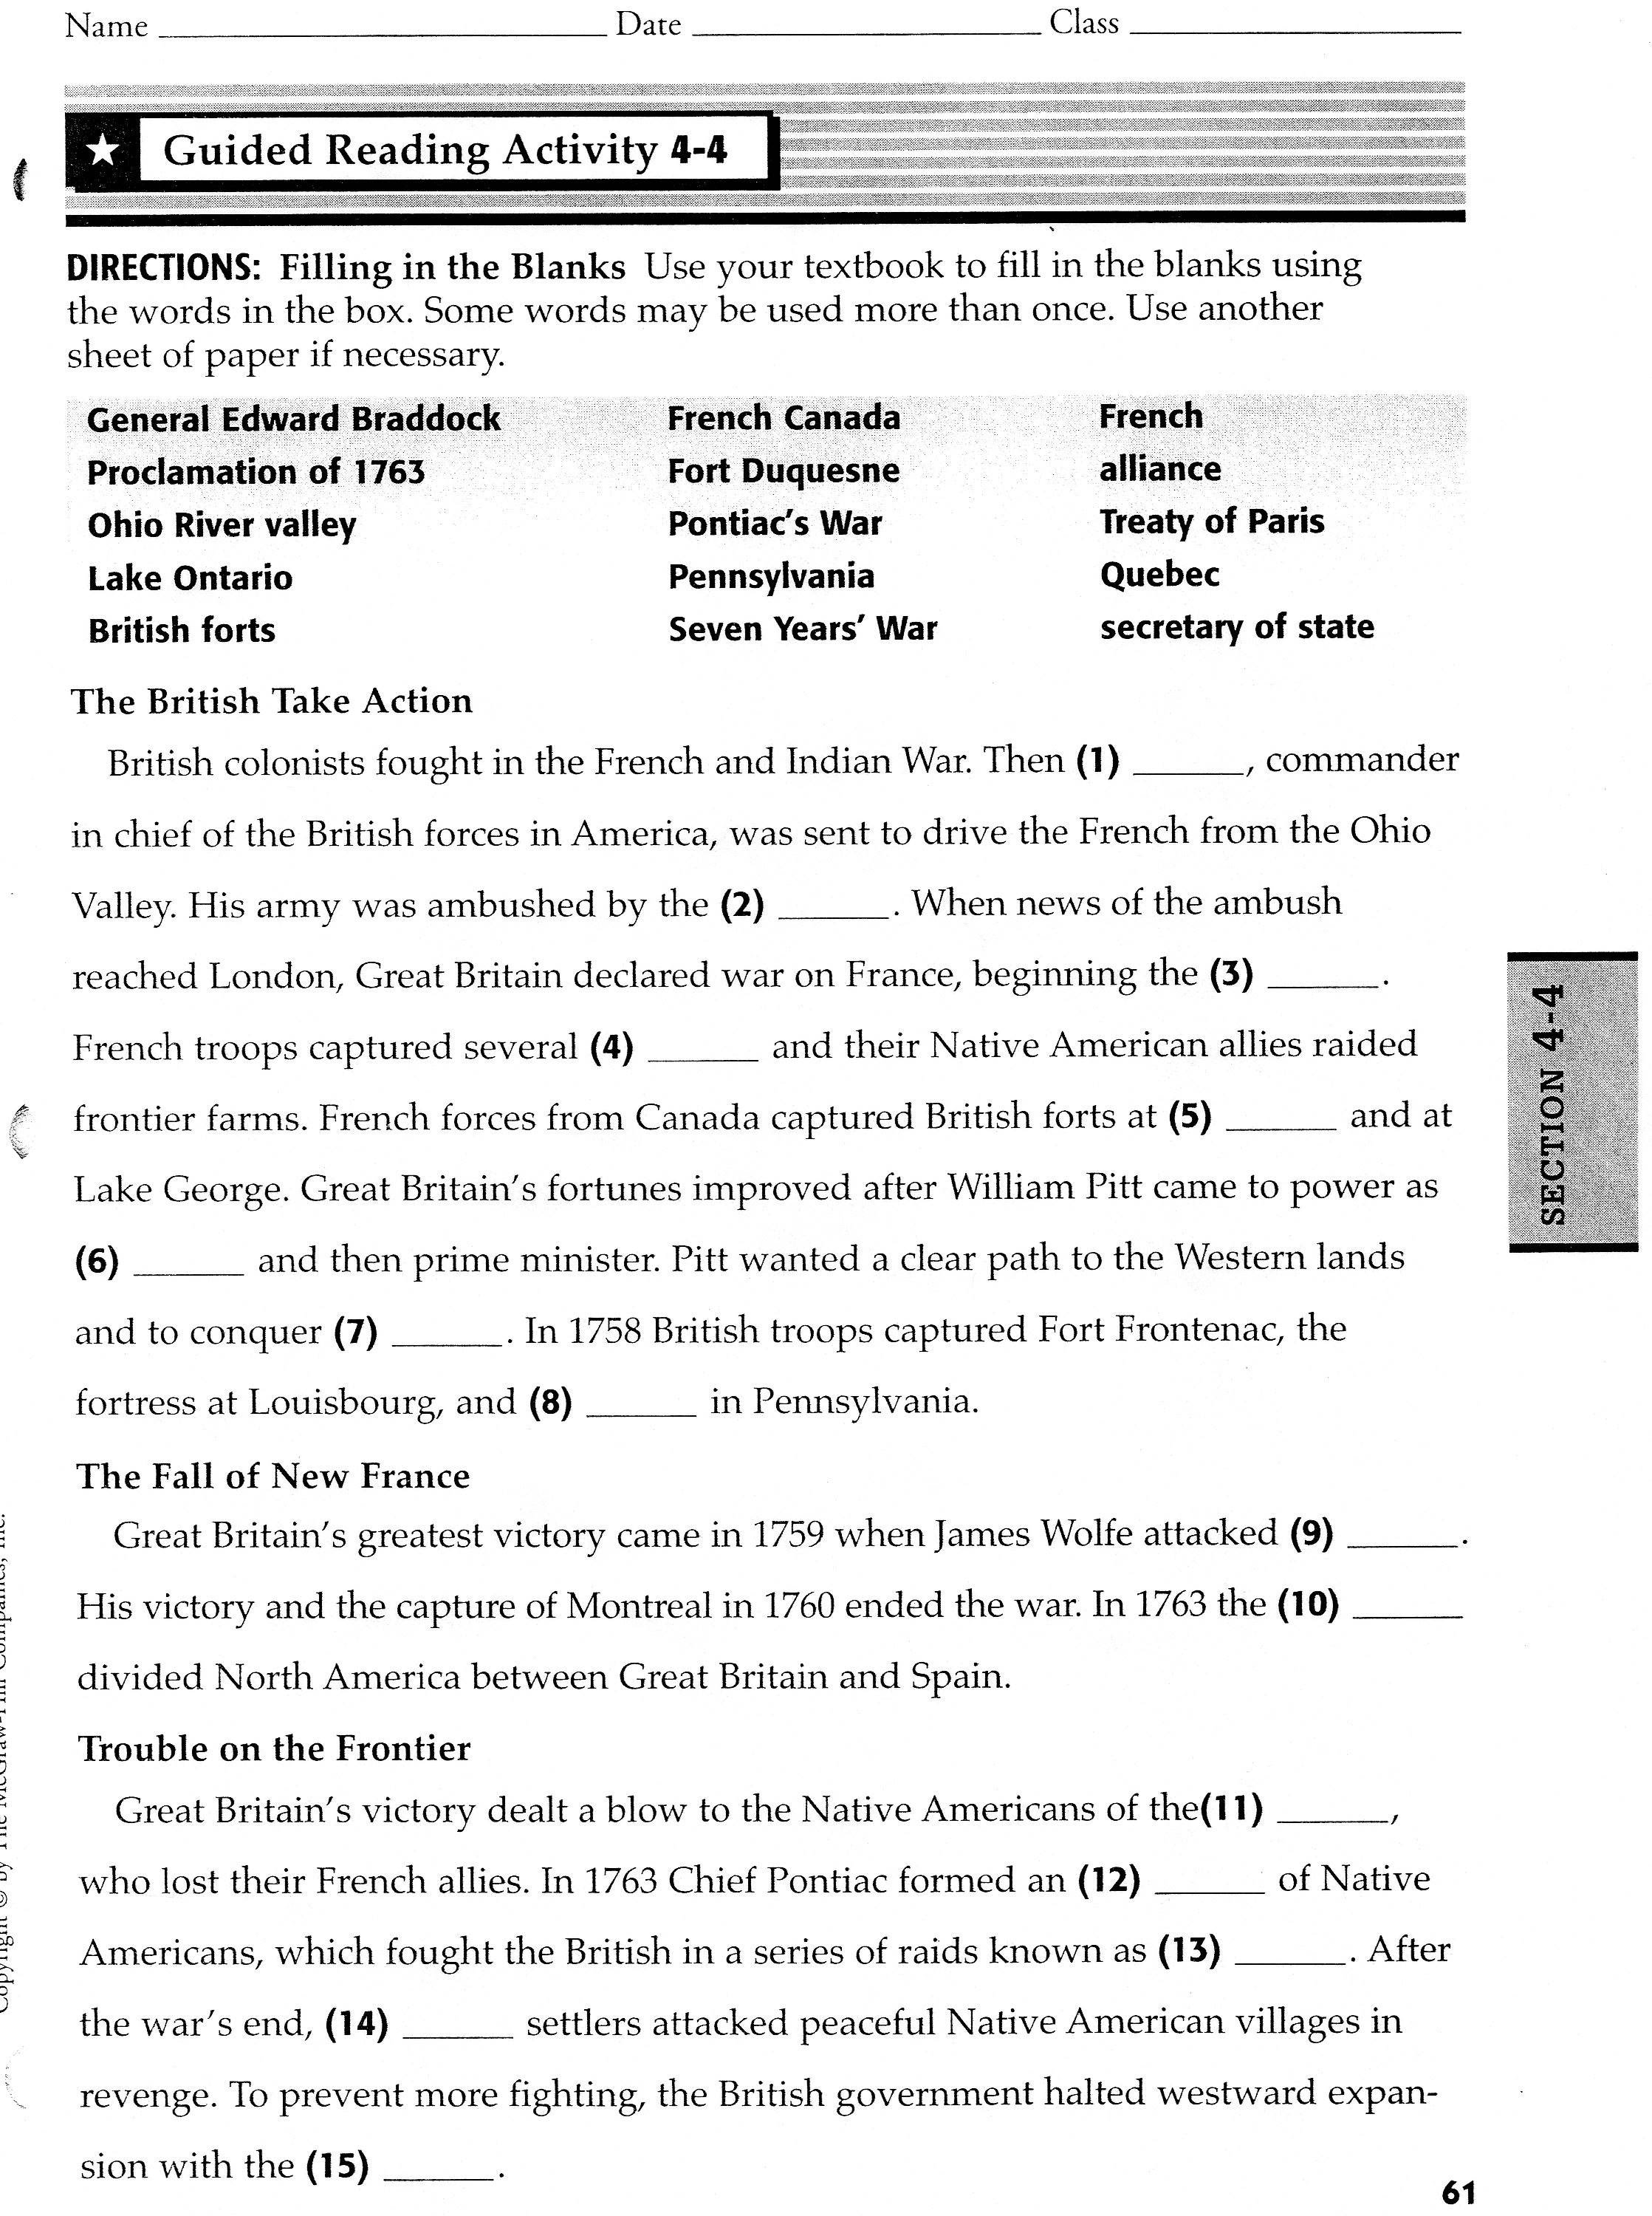 Worksheet French And Indian War Worksheets Worksheet Fun